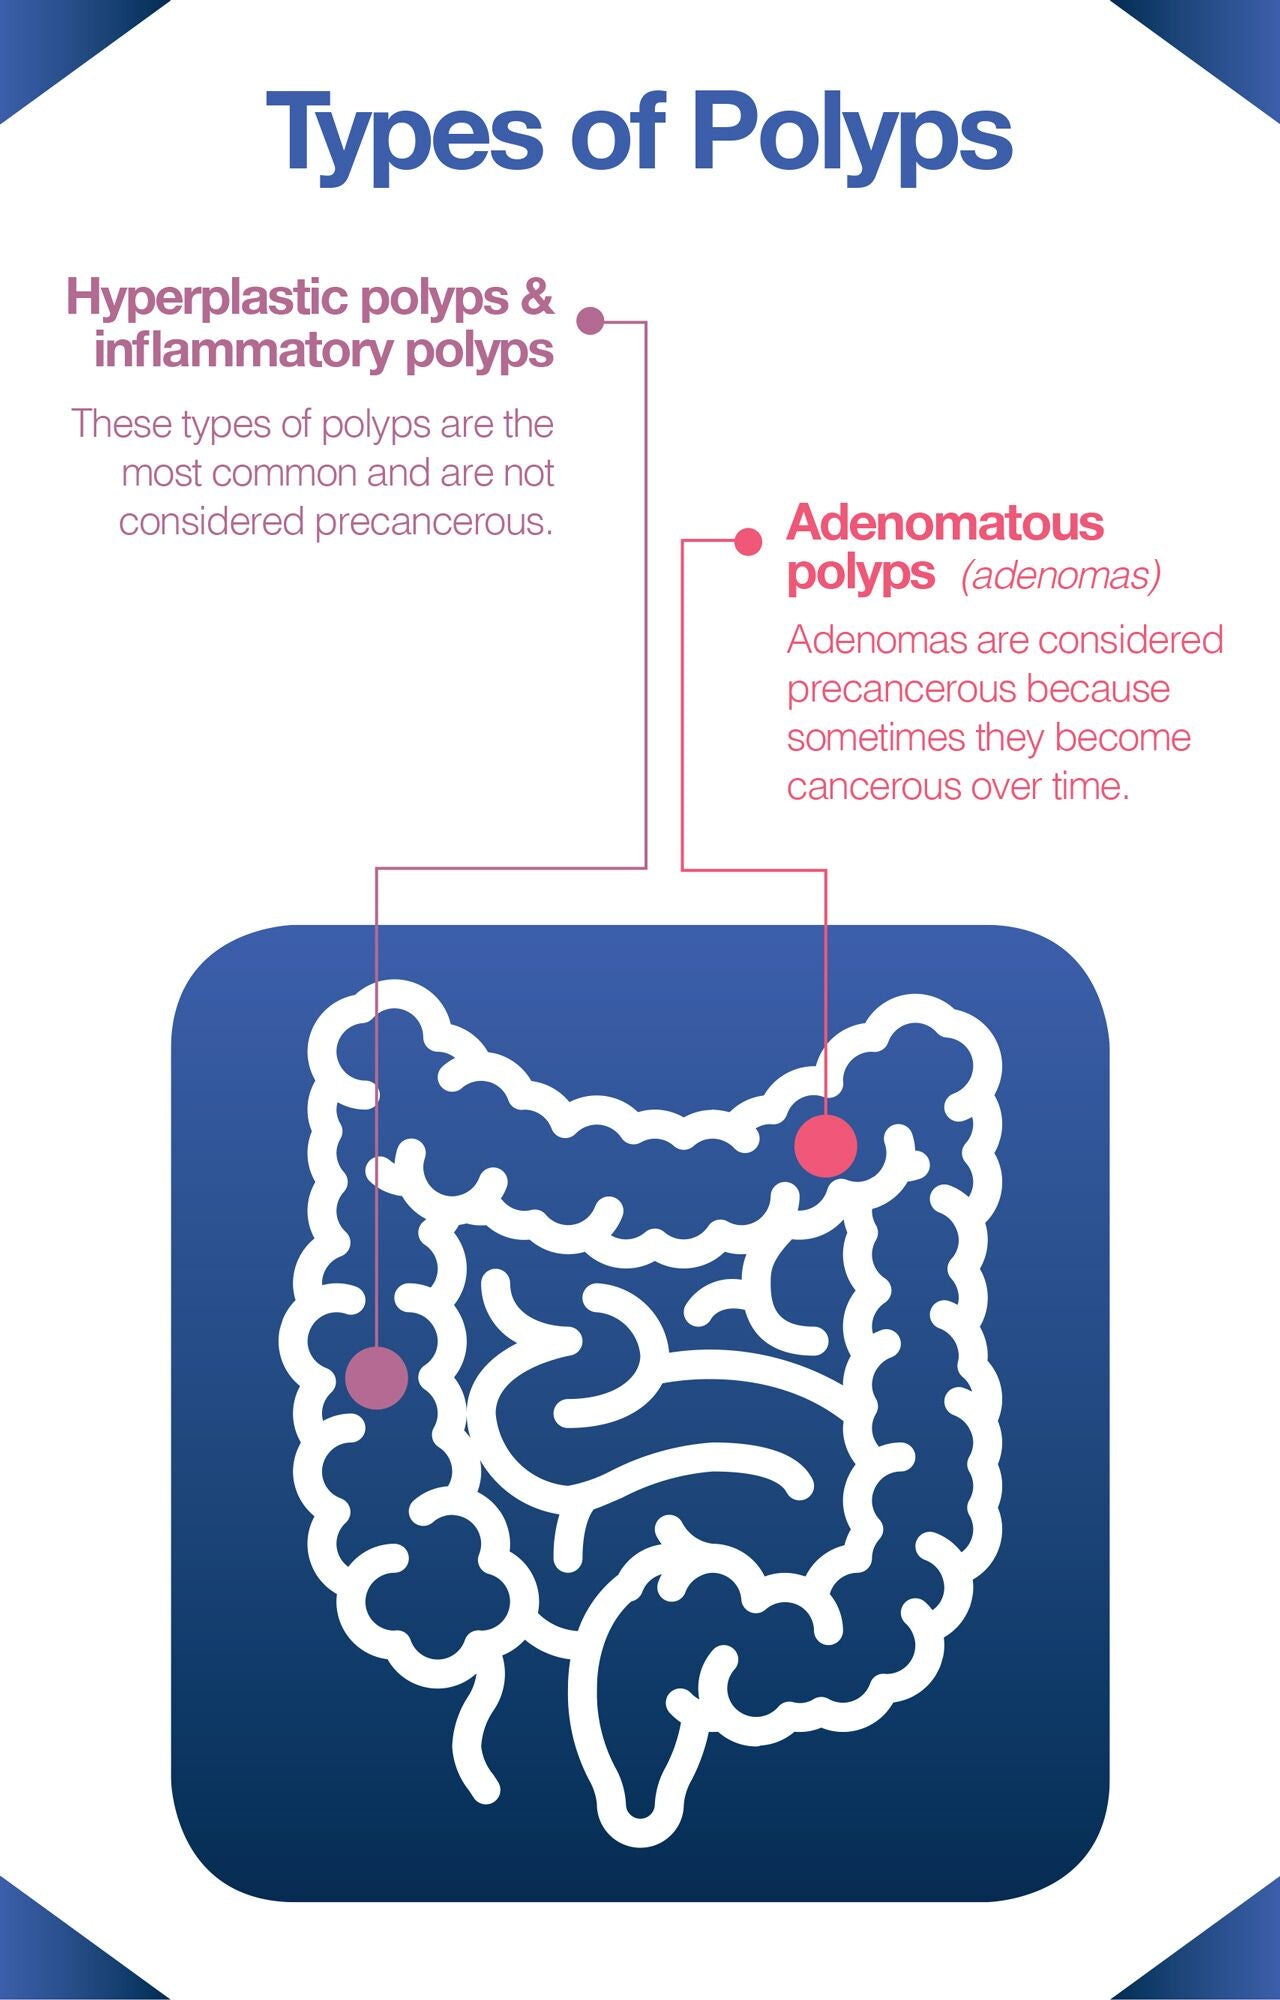 Most colon cancers are caused by polyps.